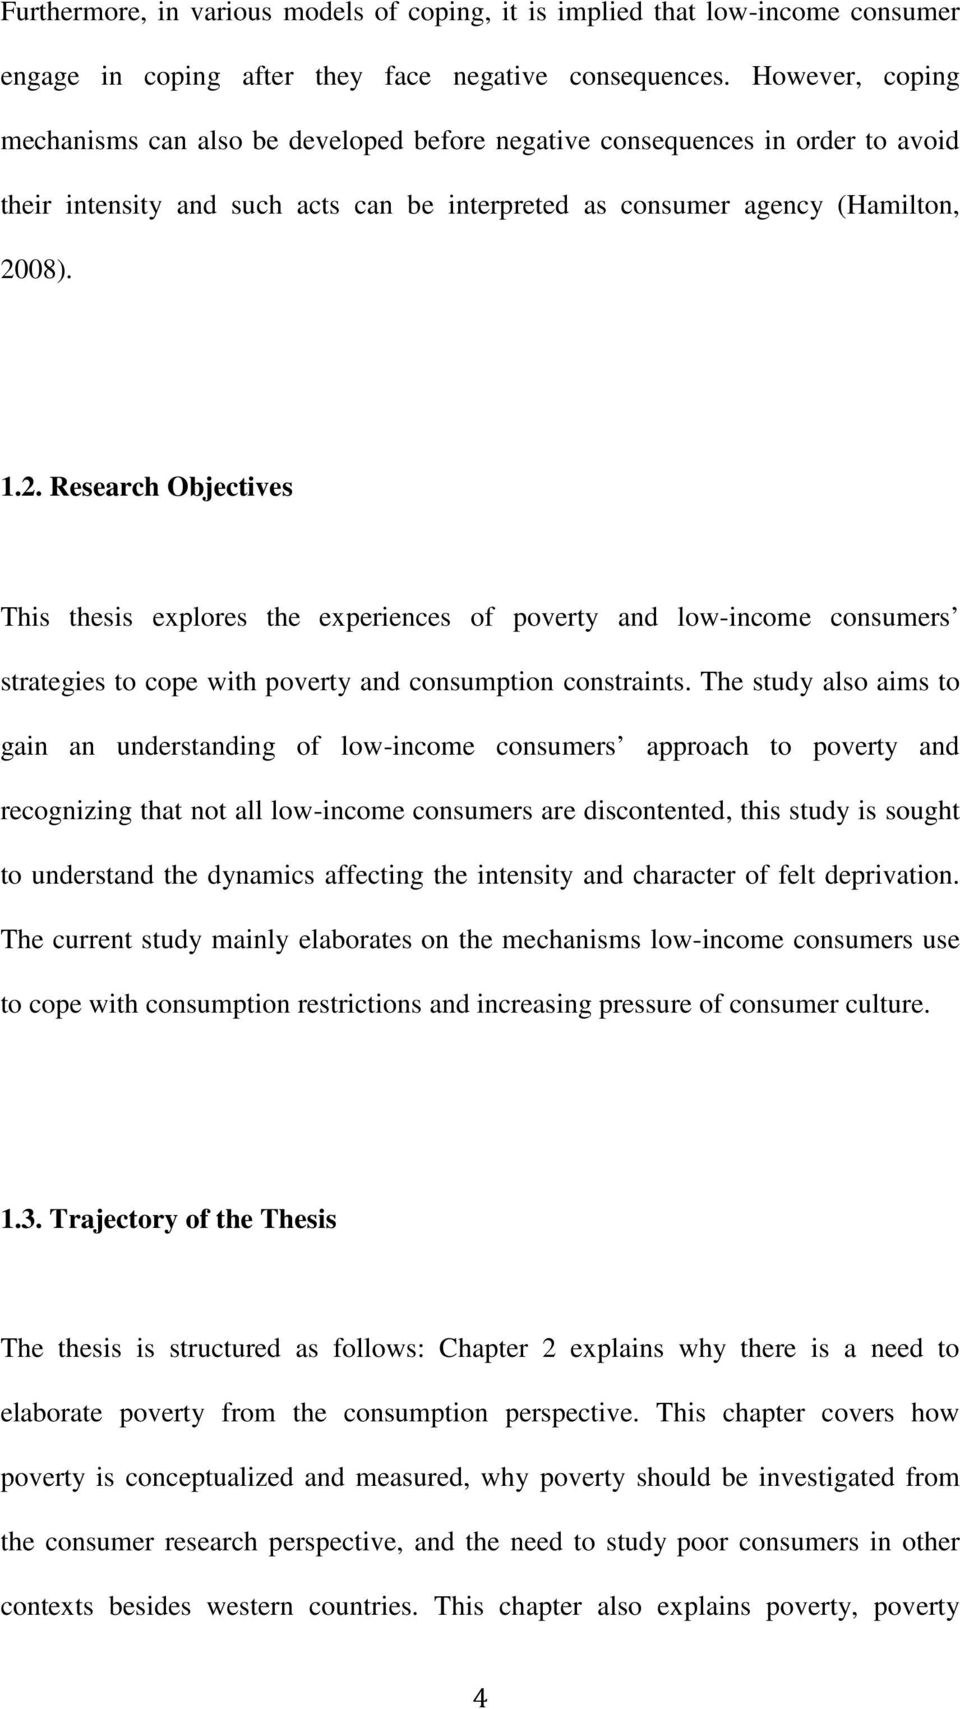 08). 1.2. Research Objectives This thesis explores the experiences of poverty and low-income consumers strategies to cope with poverty and consumption constraints.